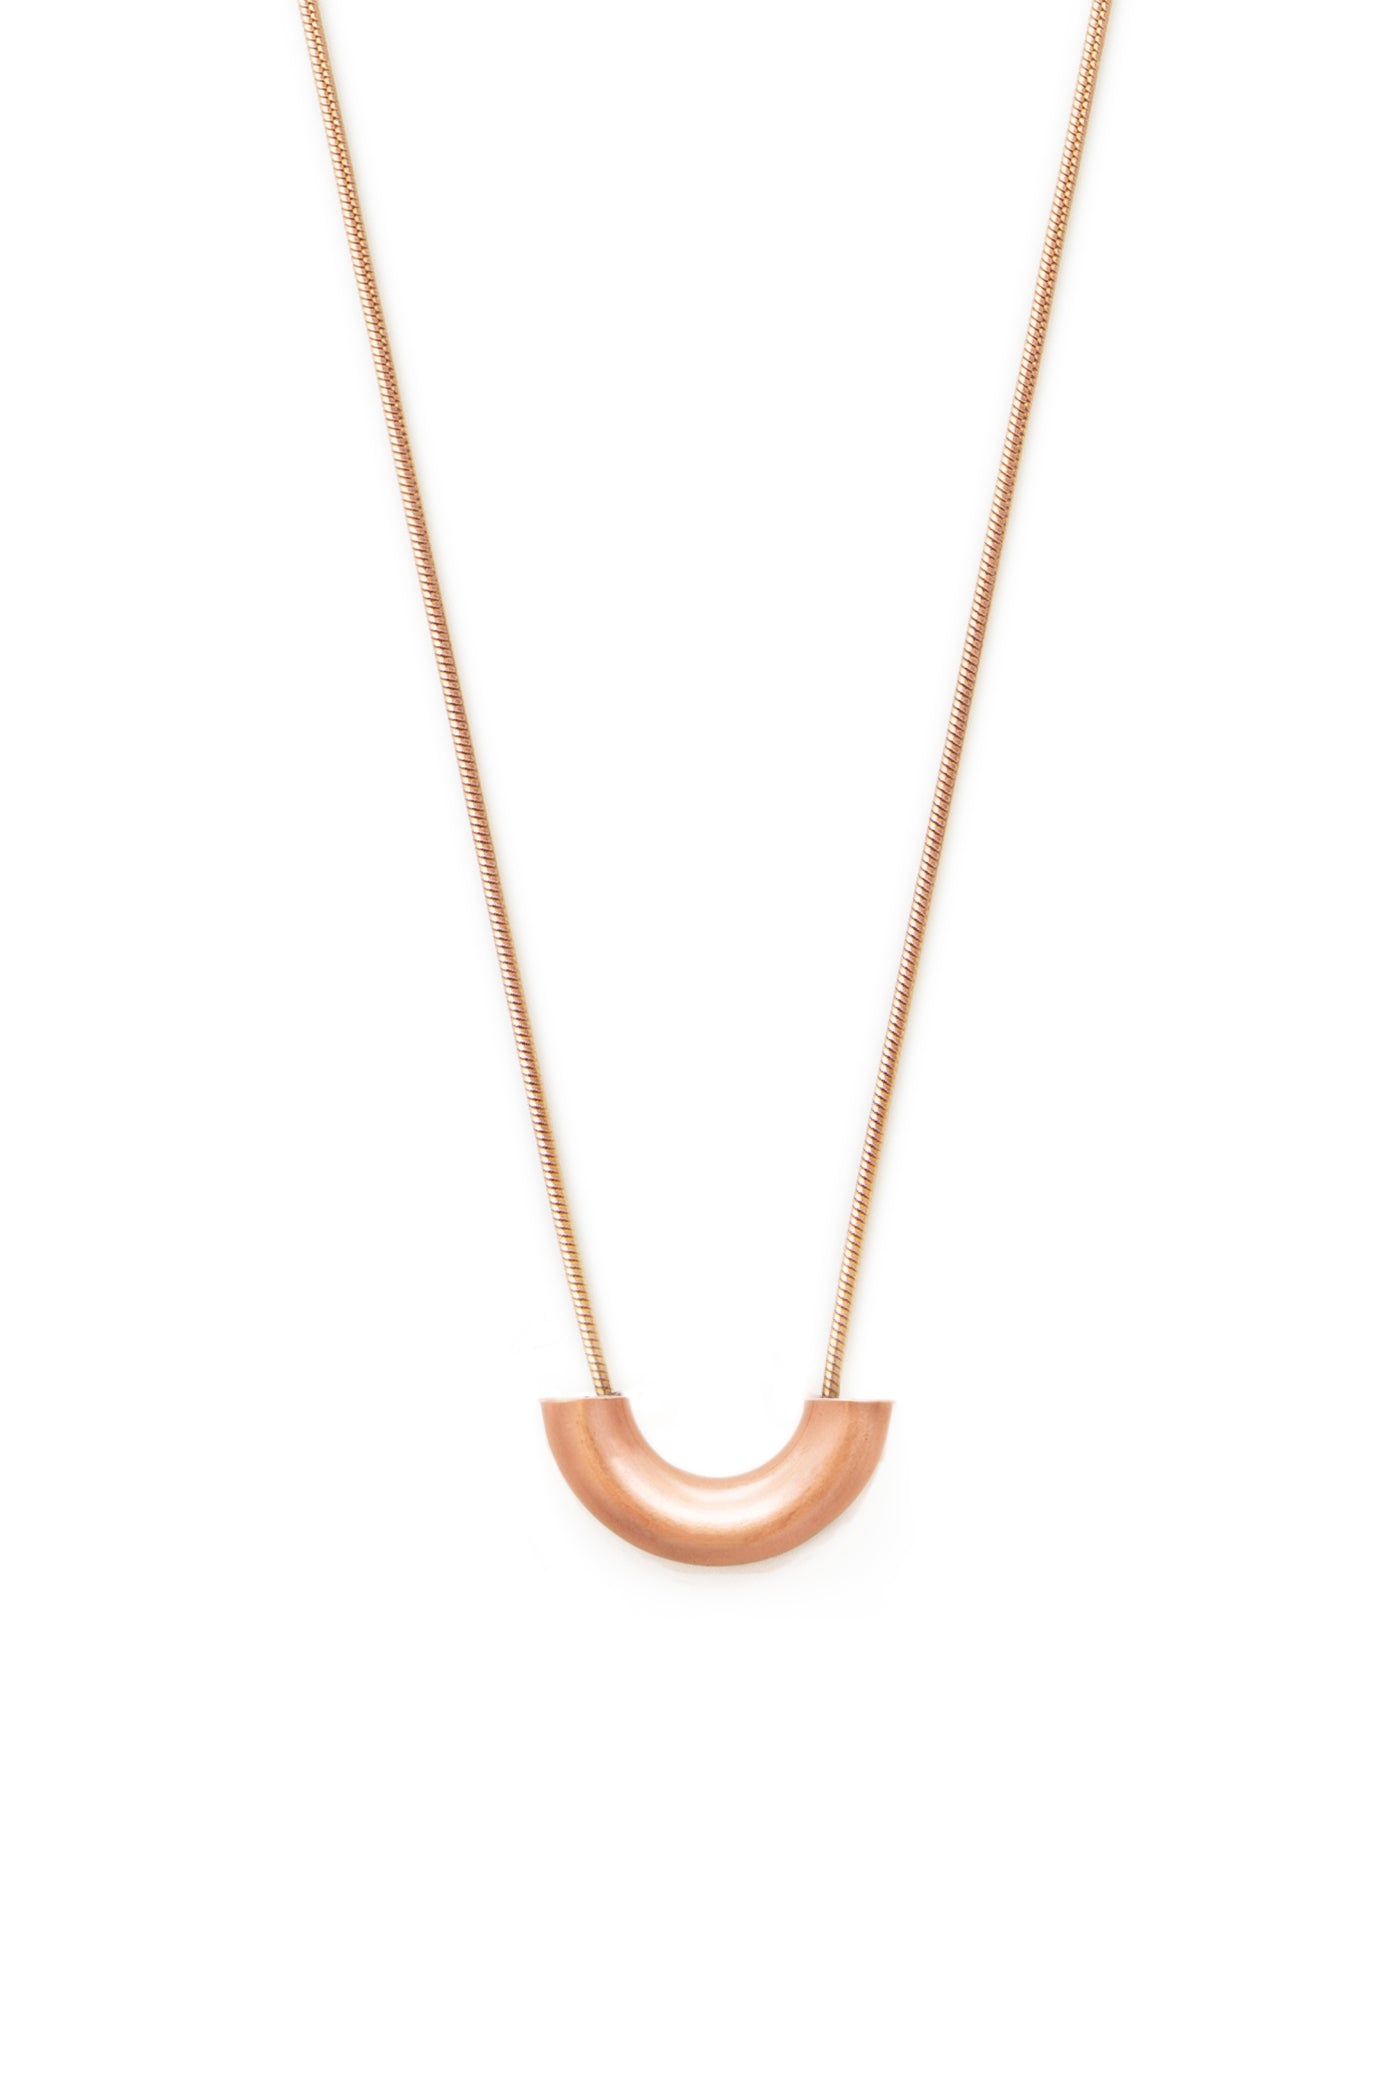 PIPA necklace N°1